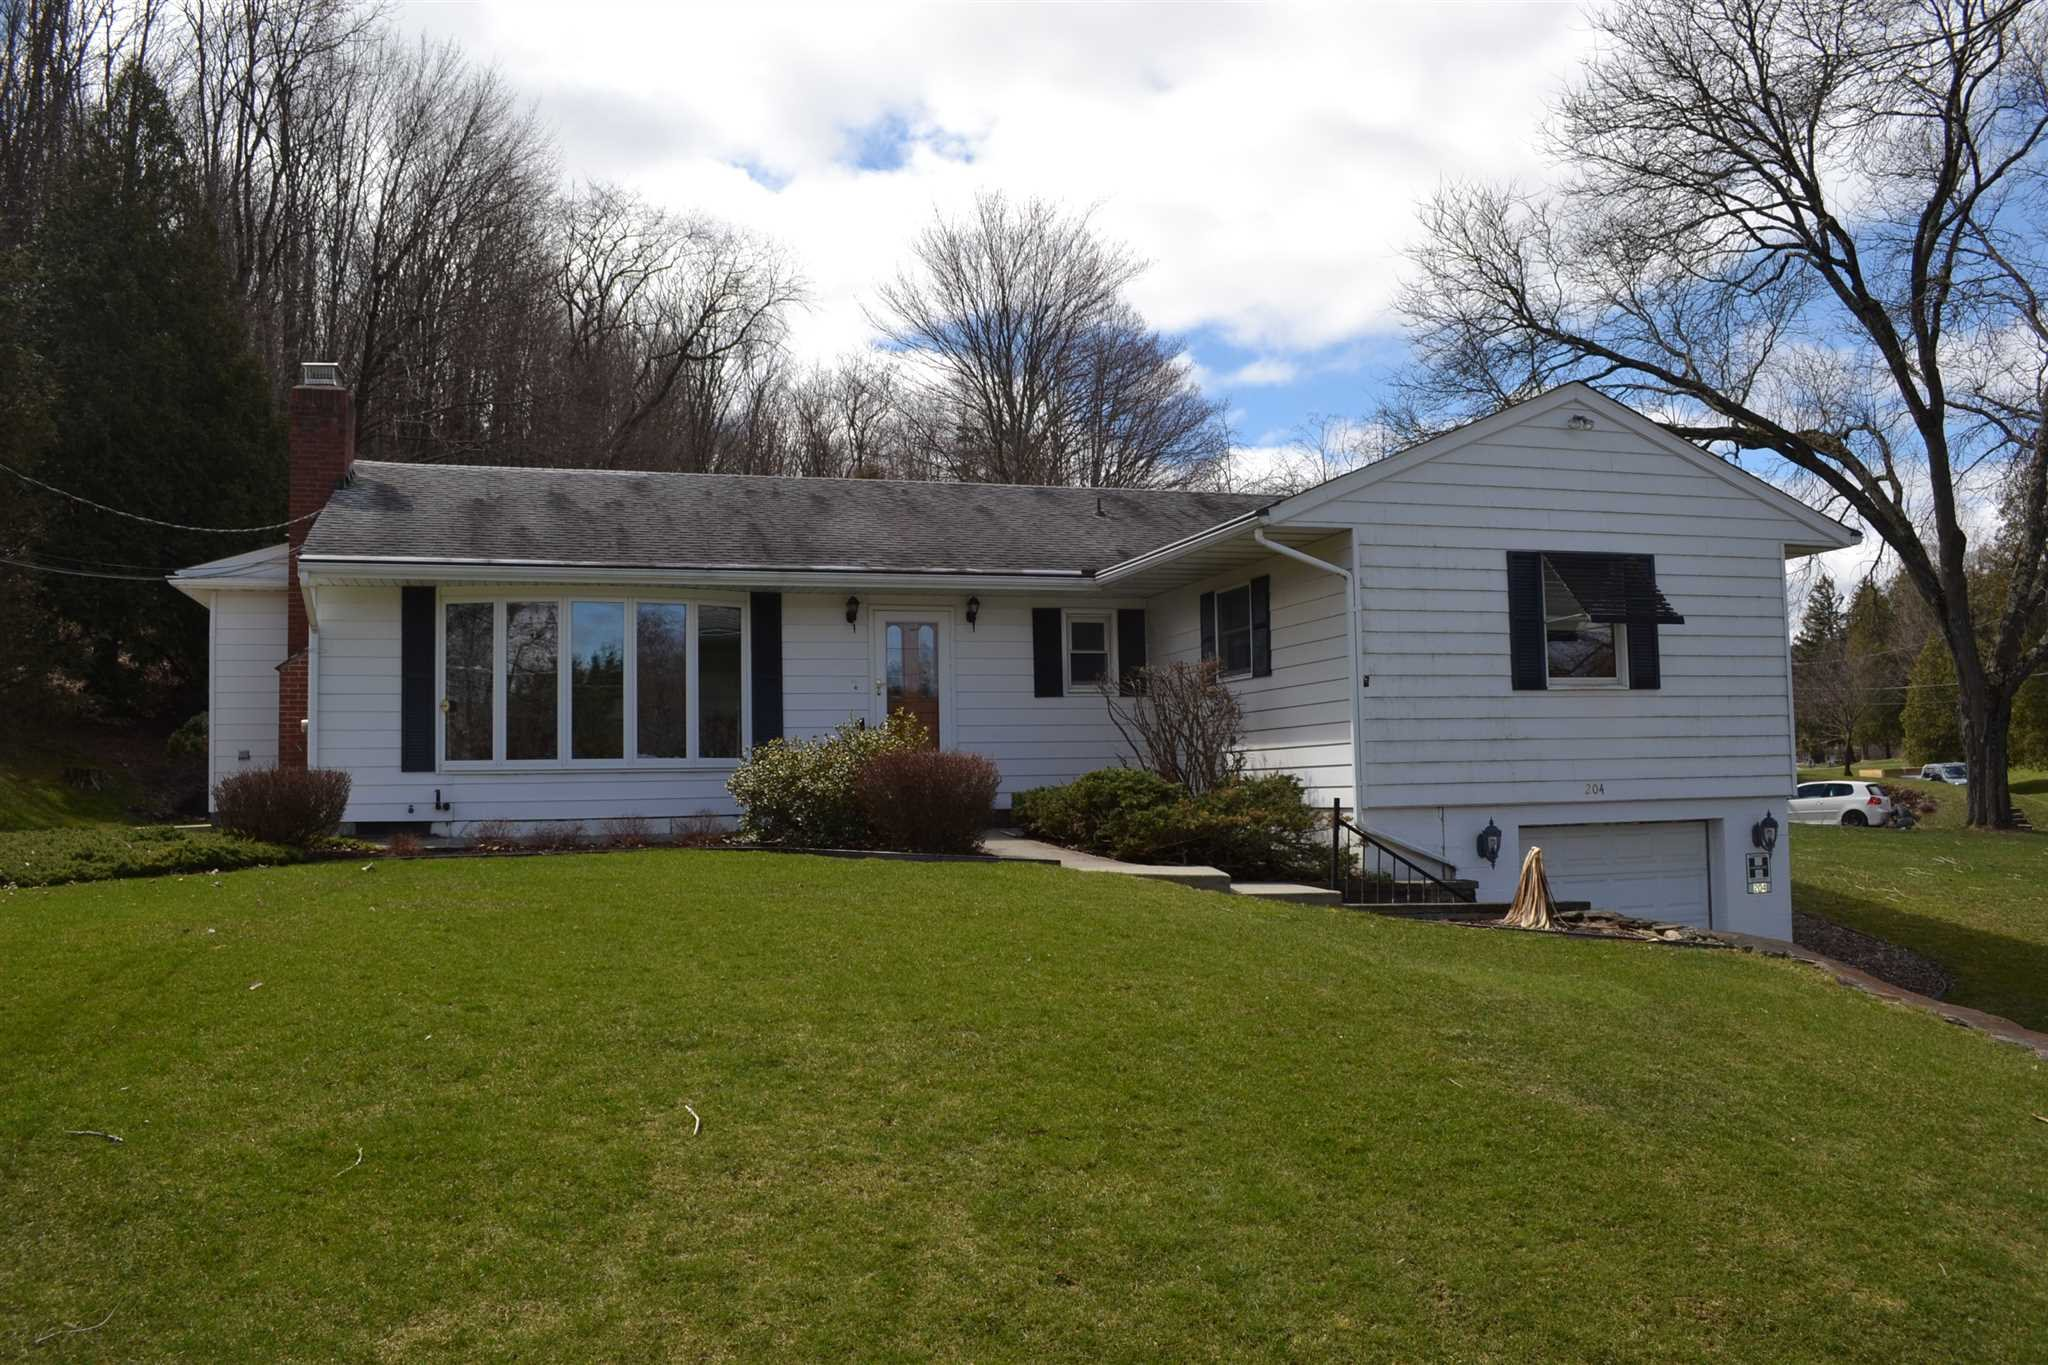 Single Family Home for Sale at 204 NELLIE HILL ACRES 204 NELLIE HILL ACRES Dover Plains, New York 12522 United States